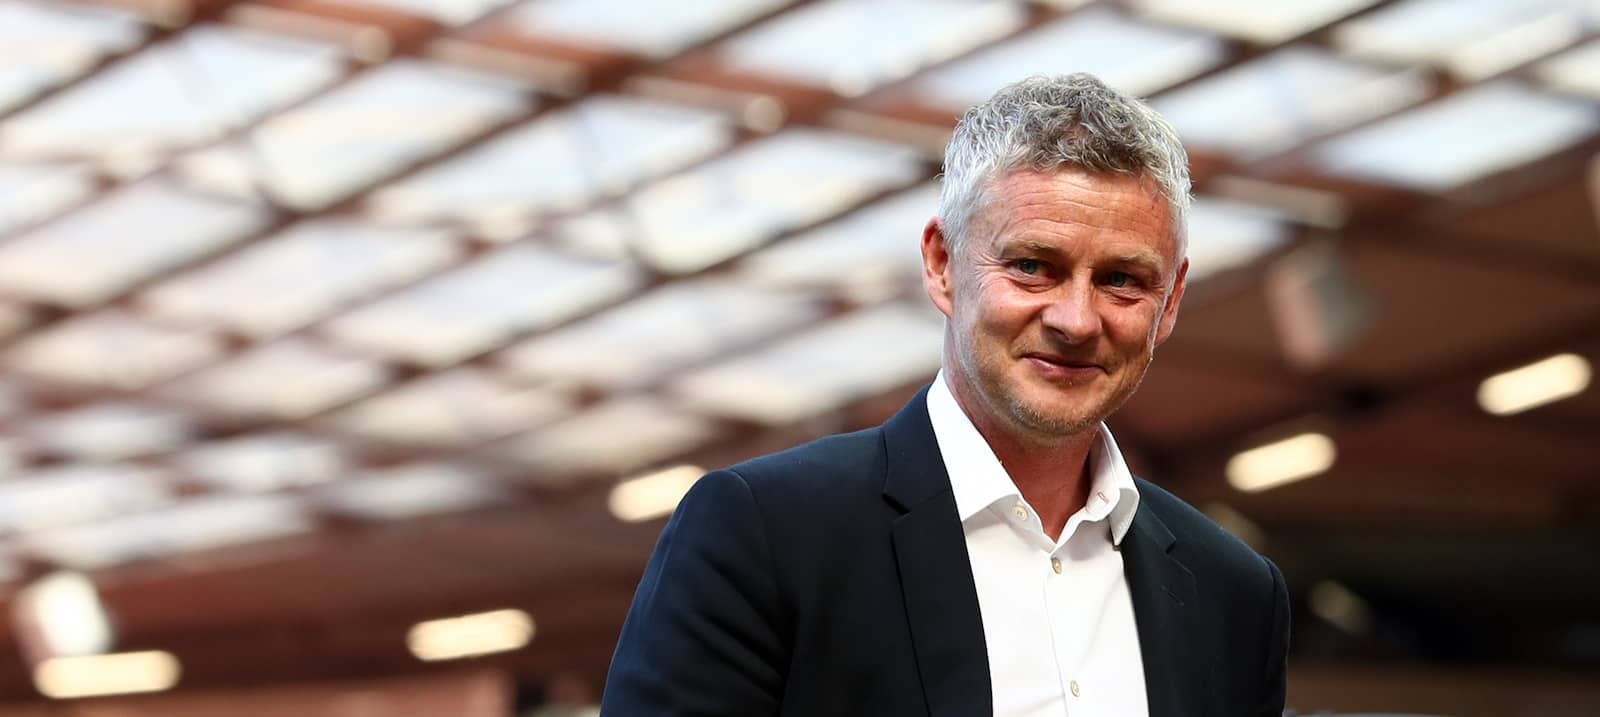 Ole Gunnar Solskjaer believes preparation changes key to home form